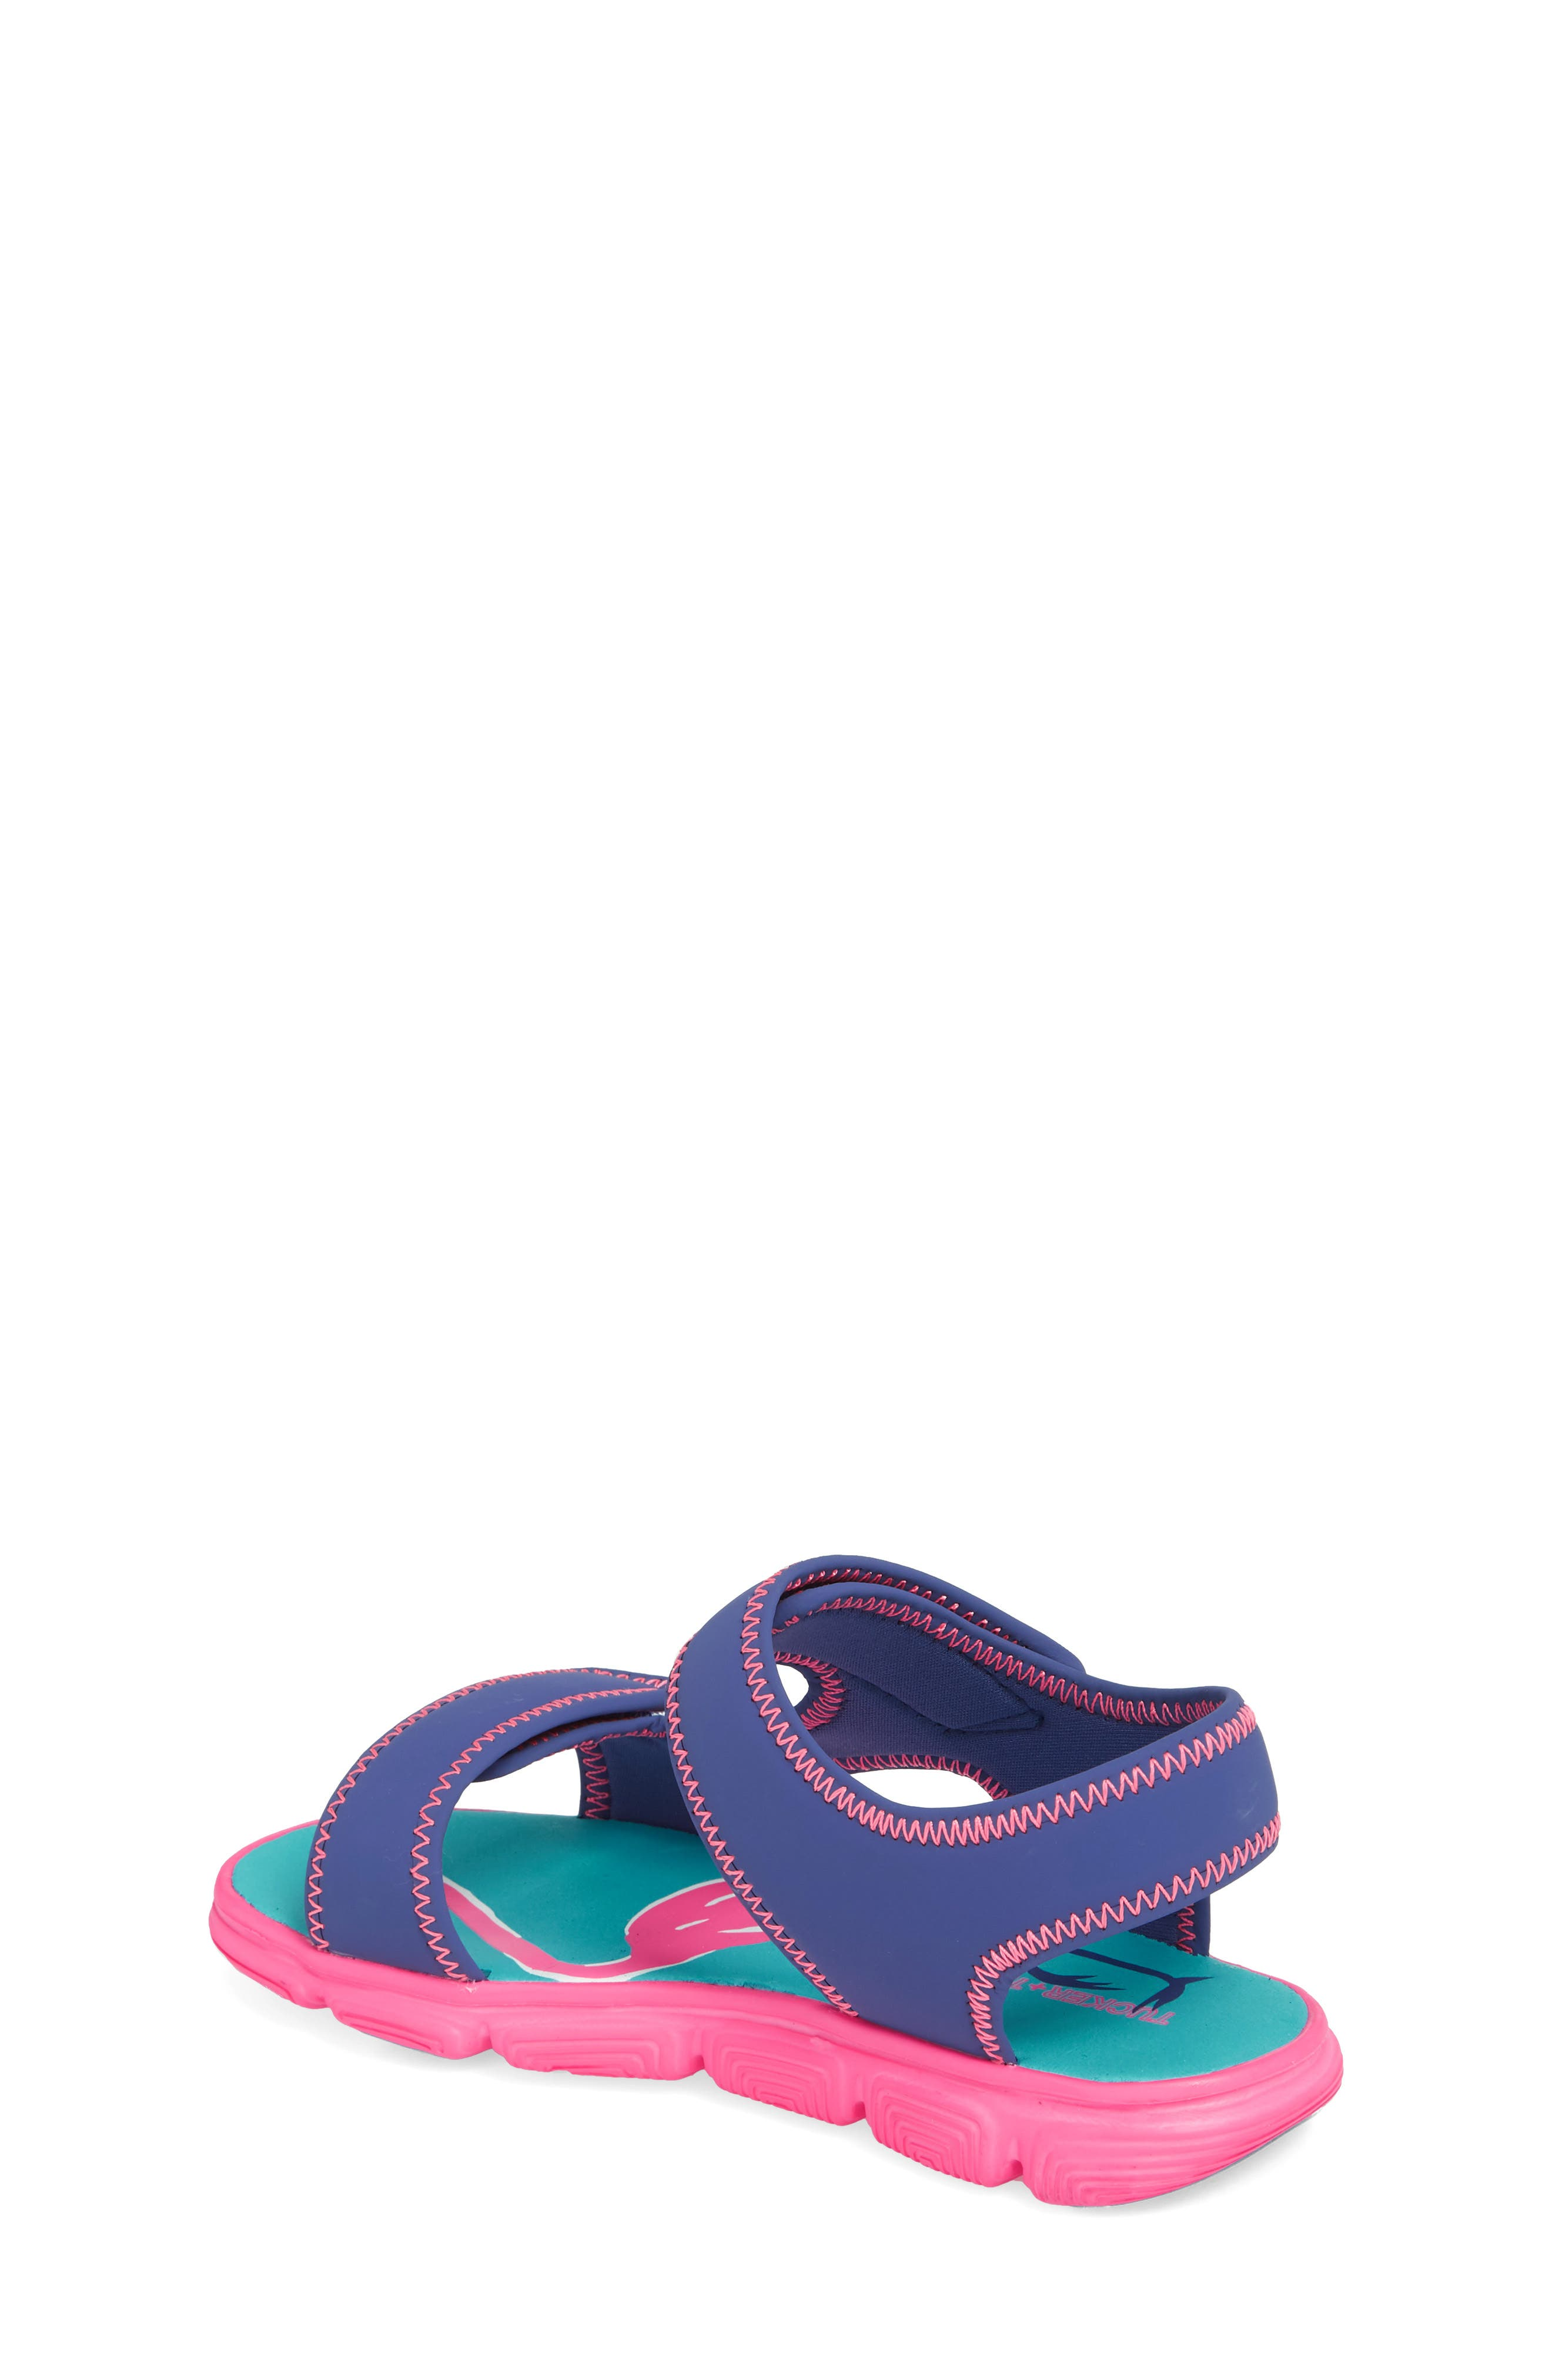 Everly Water Sandal,                             Alternate thumbnail 2, color,